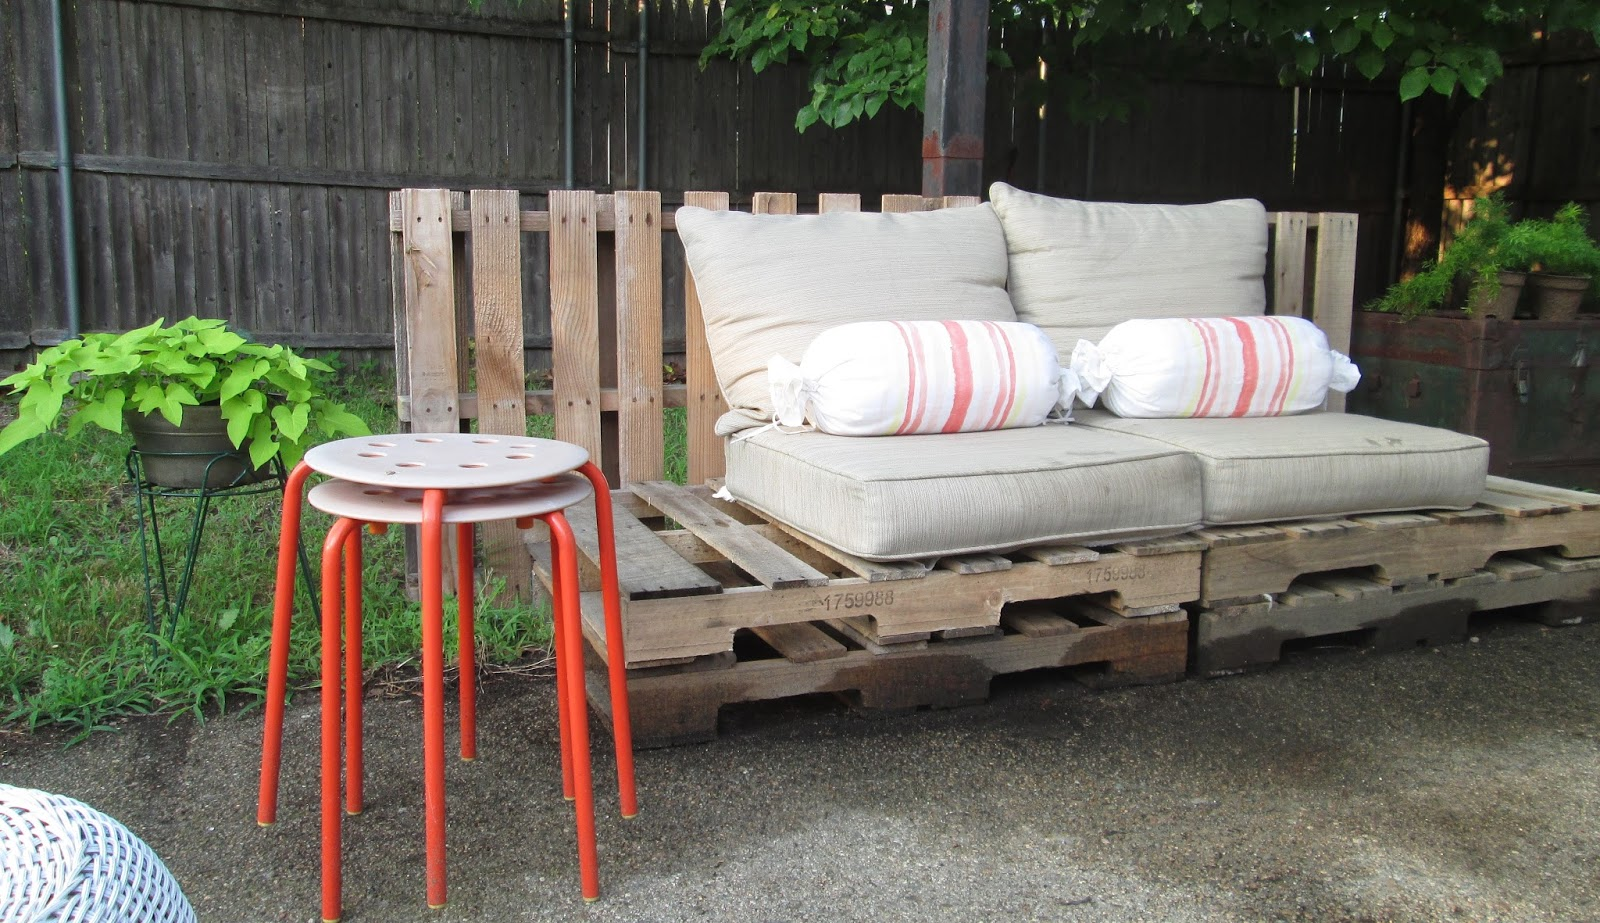 Garden Furniture From Wooden Pallets diy wooden deck furniture diy how to build outdoor furniture